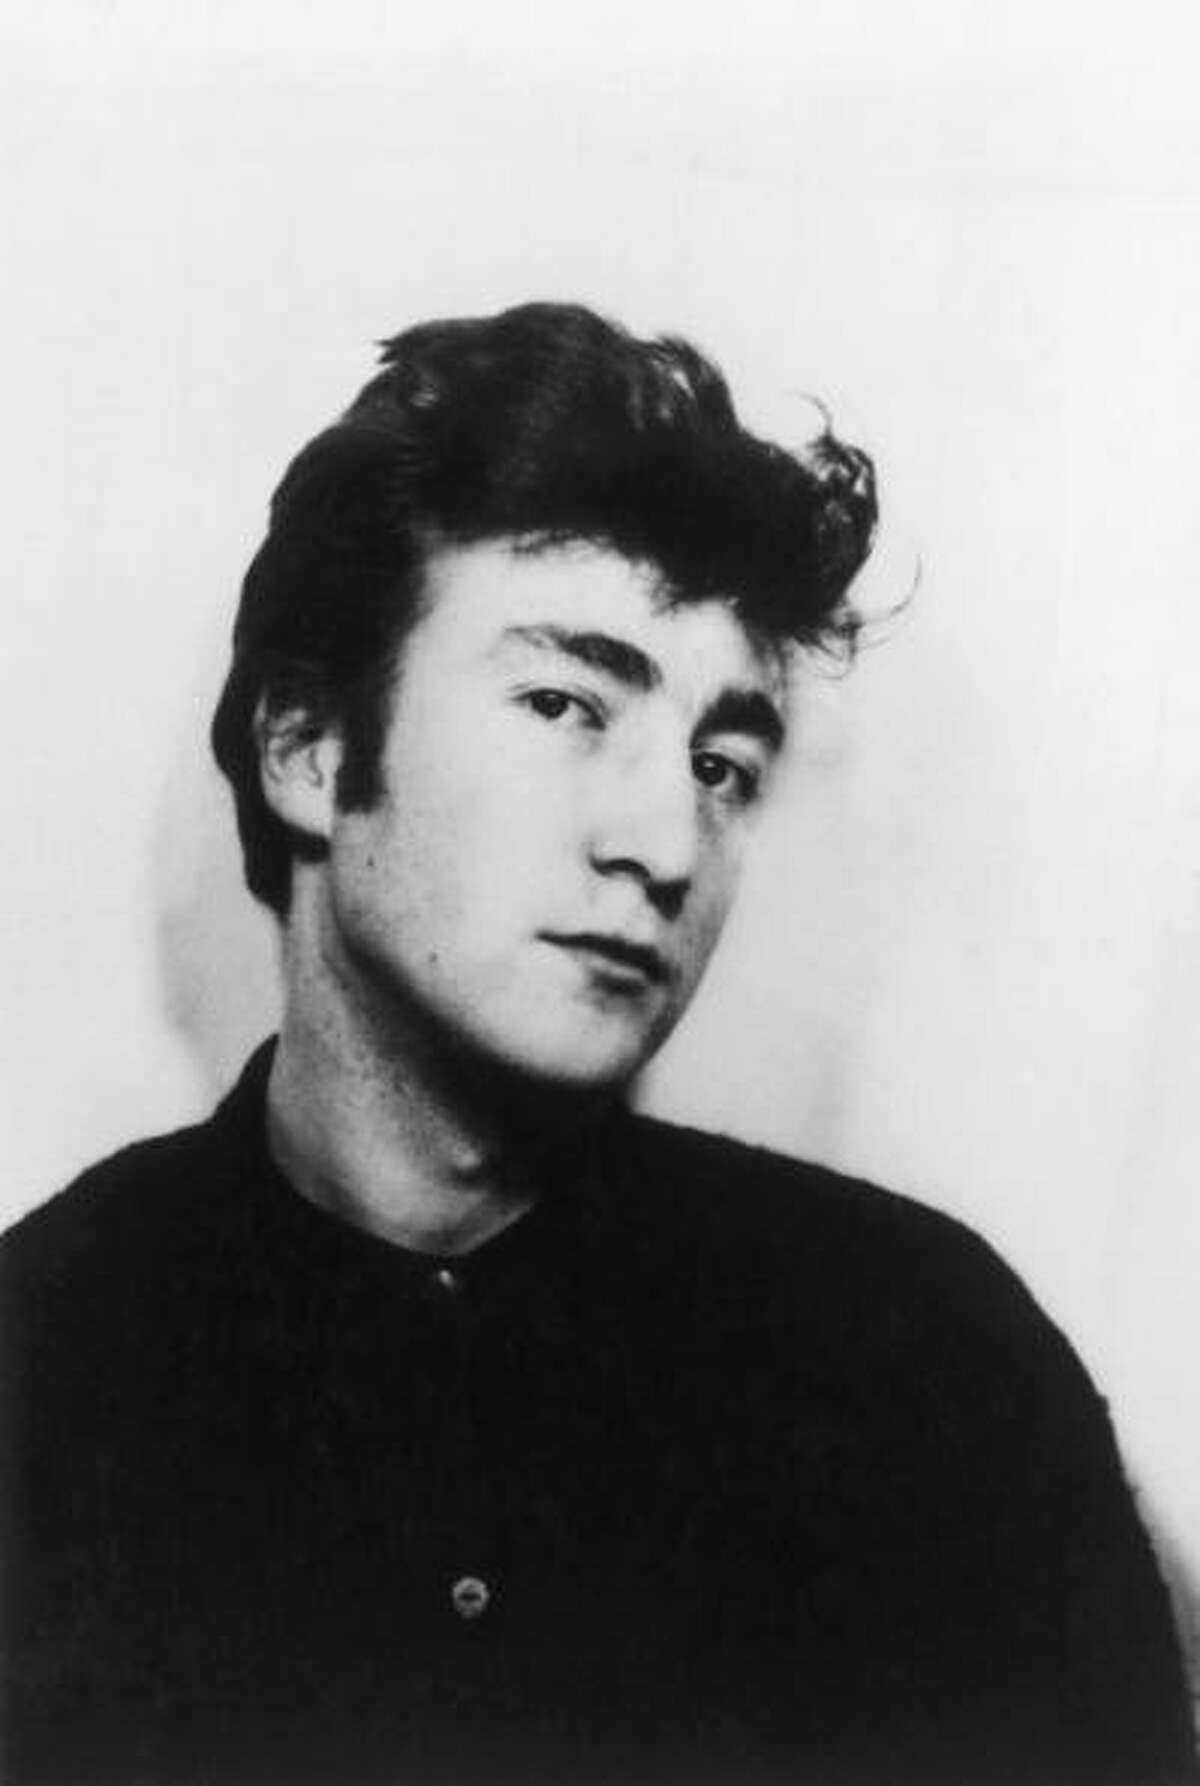 No school Though bright, Lennon was a smart-aleckand was thrown out of art school before his final year. He was, he said, the kid your parents didn't want you hanging with.